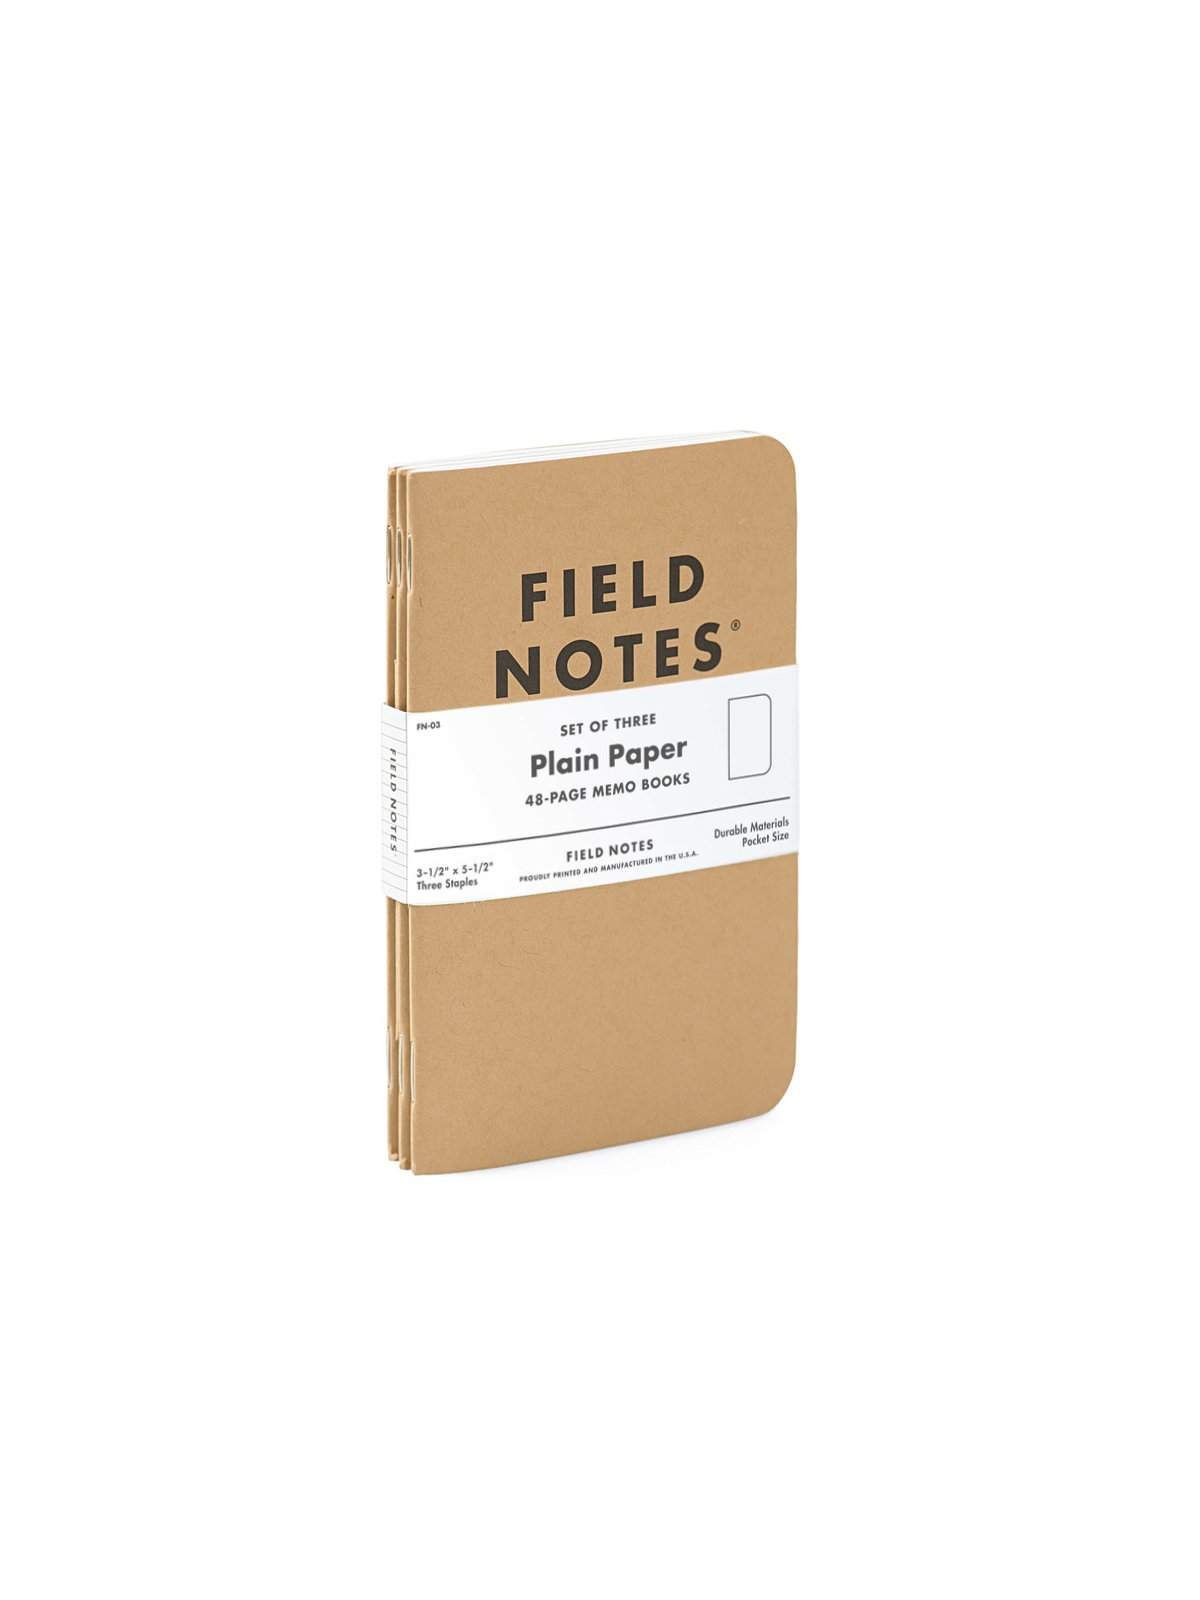 Field Notes Original Kraft 3 Pack Plain Paper - MORE by Morello Indonesia